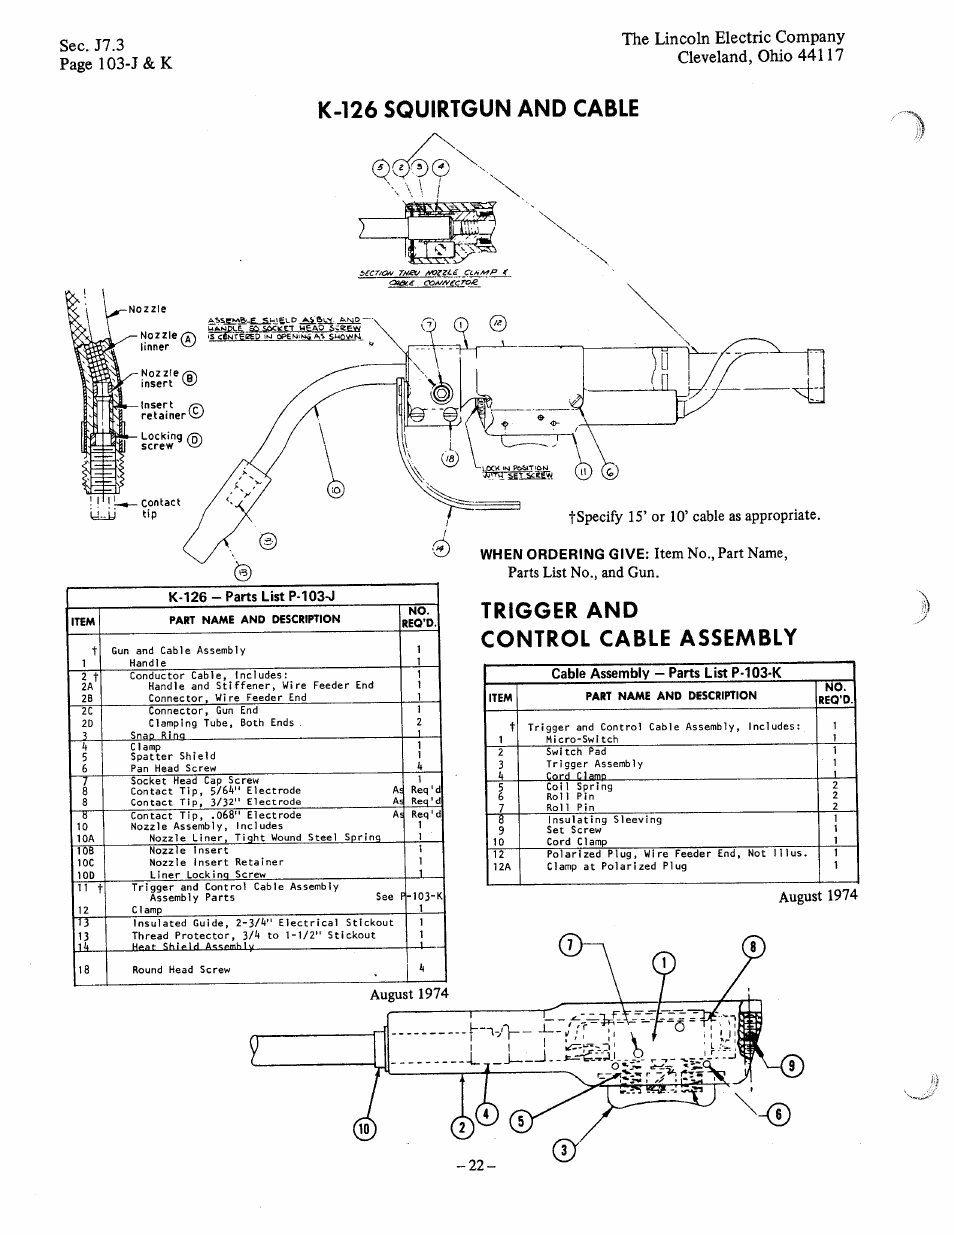 hight resolution of k 126 squirtgun and cable trigger and control cable assembly lincoln ln 7 user manual page 22 28